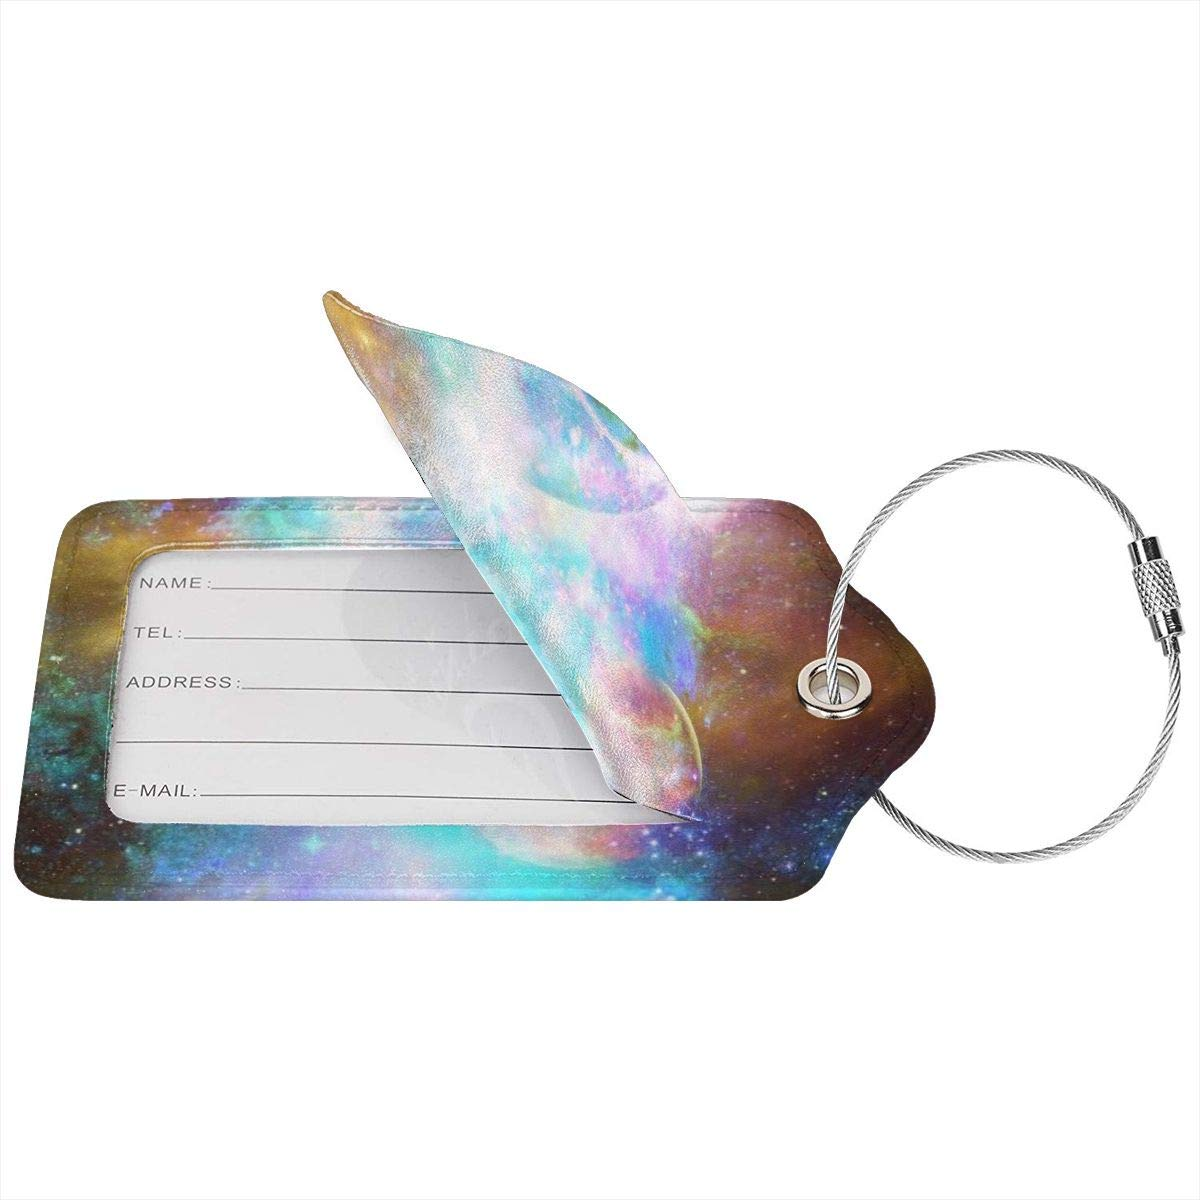 Colorful Galaxy Planet Luggage Tag Label Travel Bag Label With Privacy Cover Luggage Tag Leather Personalized Suitcase Tag Travel Accessories